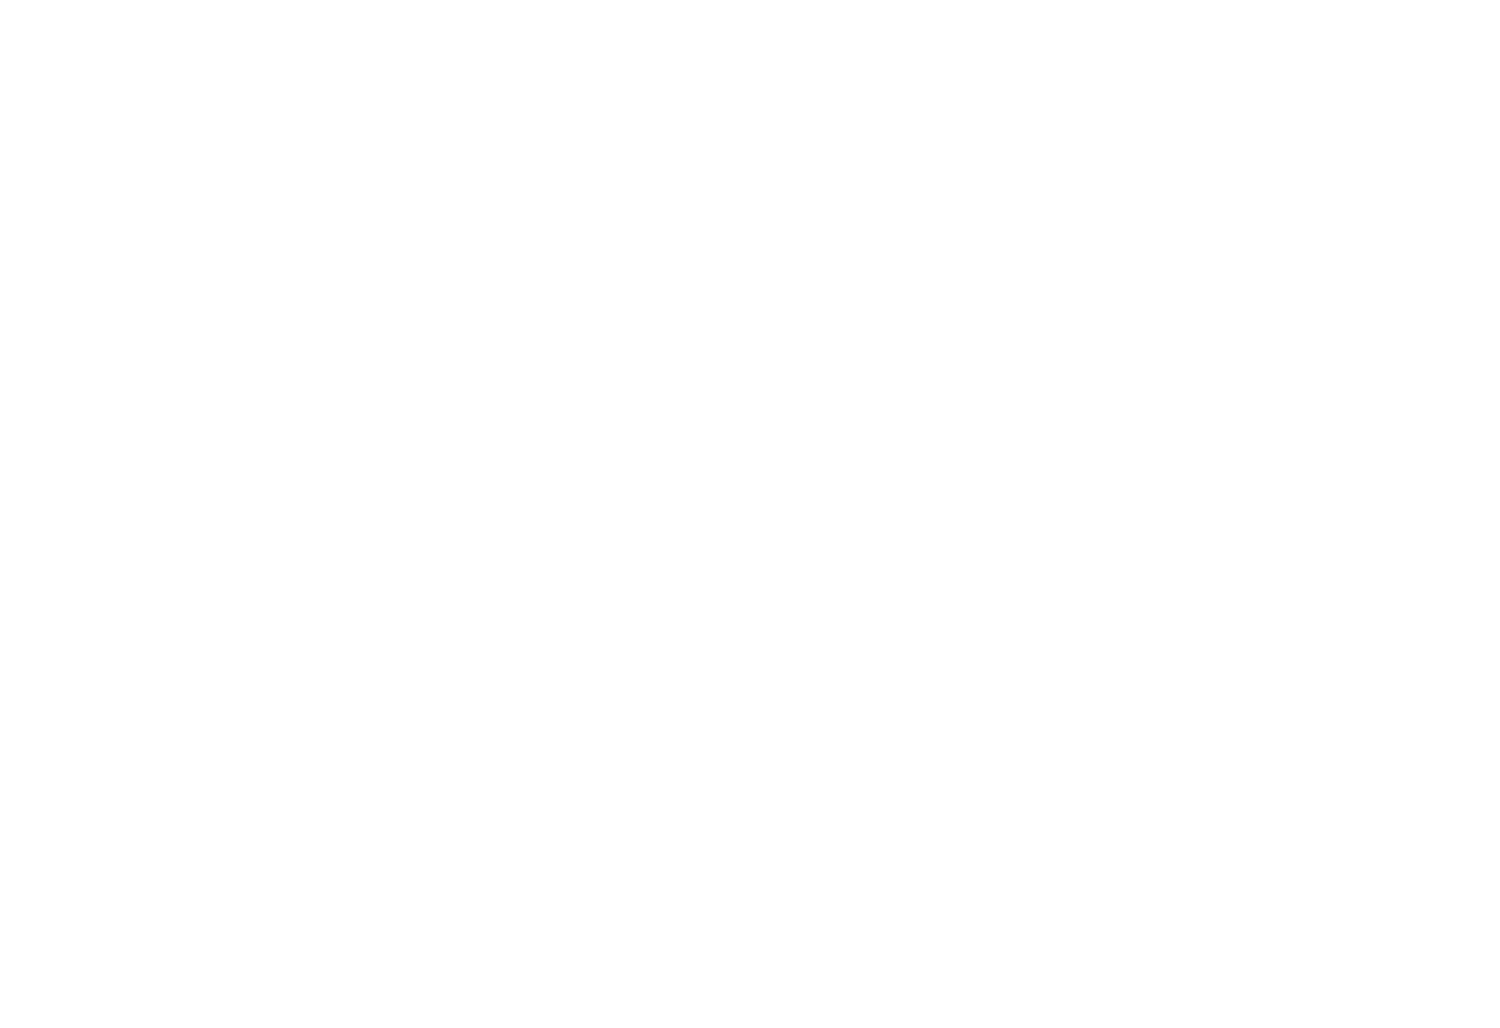 Beyond the Data LLC